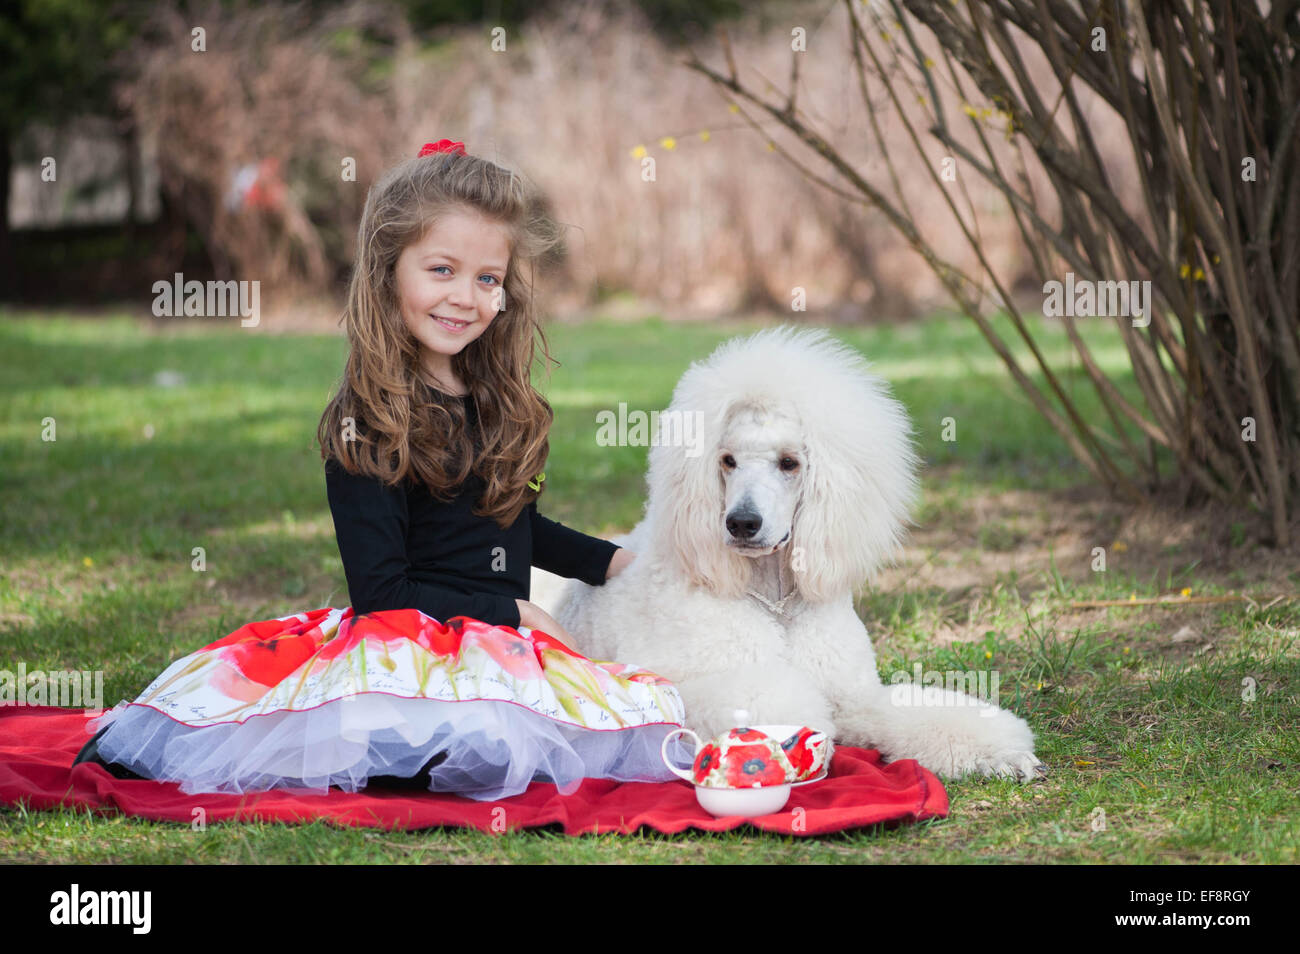 Portrait of girl (6-7) and white poodle on picnic blanket Stock Photo